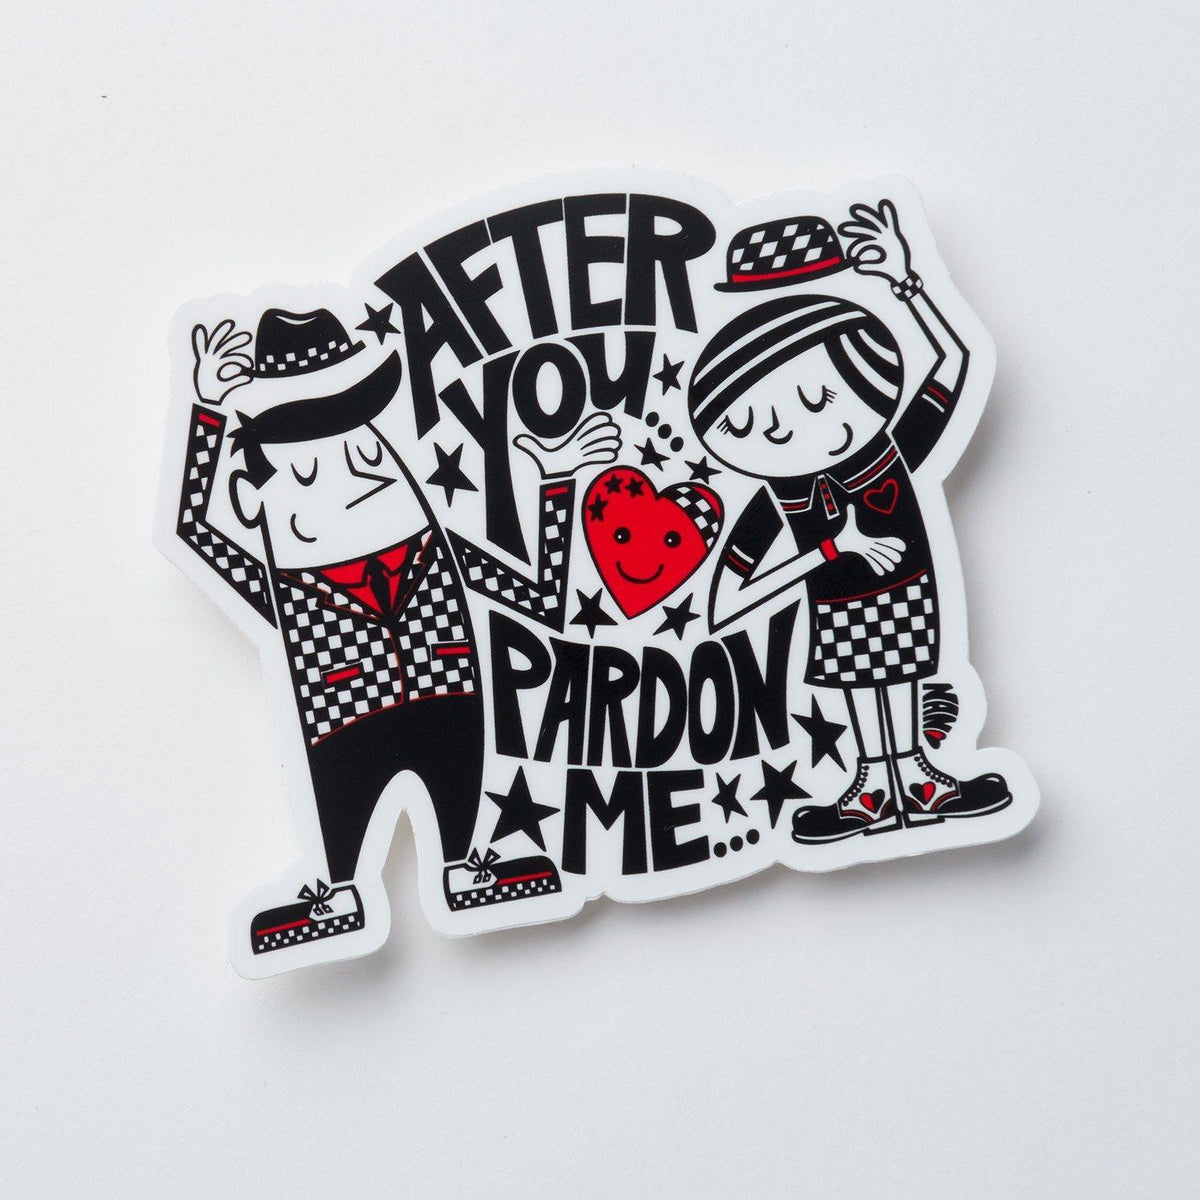 After You/Pardon Me - Pin and Stickers Bundle | Fine Art and Limited Edition Prints | The Art Of Nan Coffey